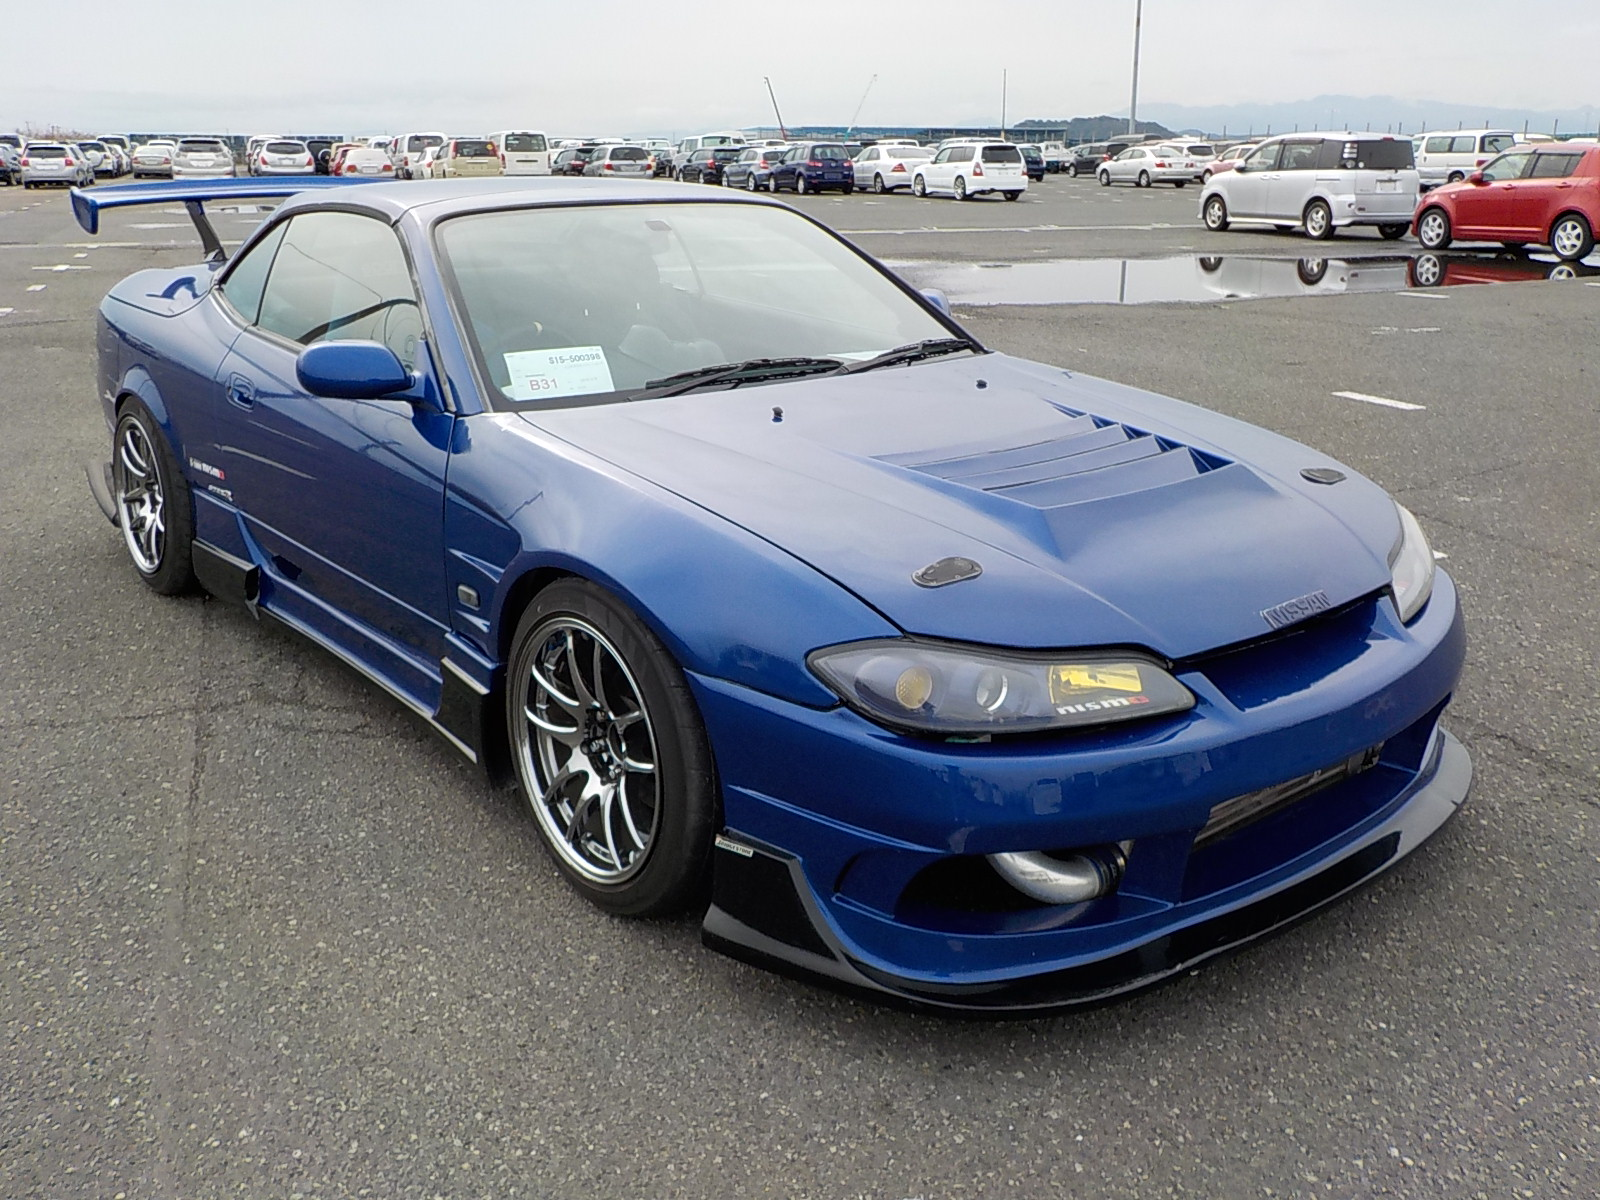 2000 nissan silvia s15 varietta 6 speed manual. Black Bedroom Furniture Sets. Home Design Ideas